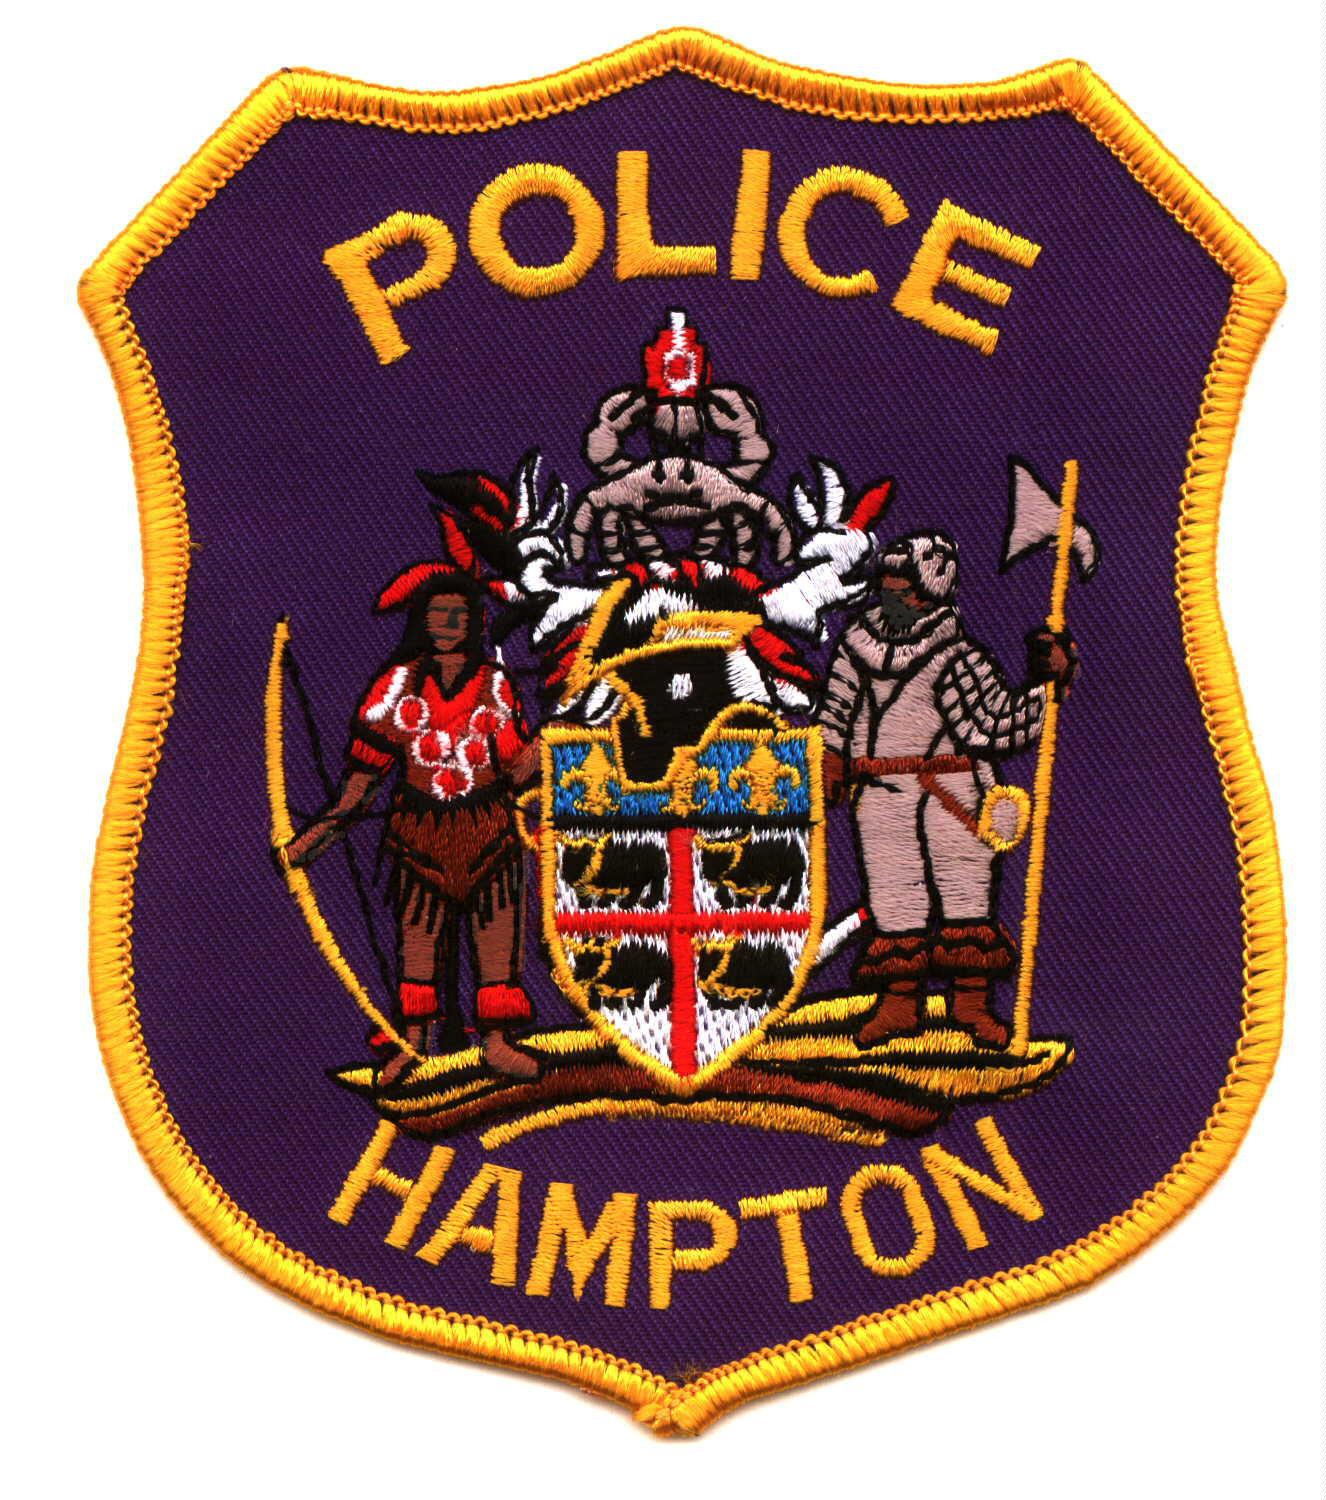 Hamptom Police Patch